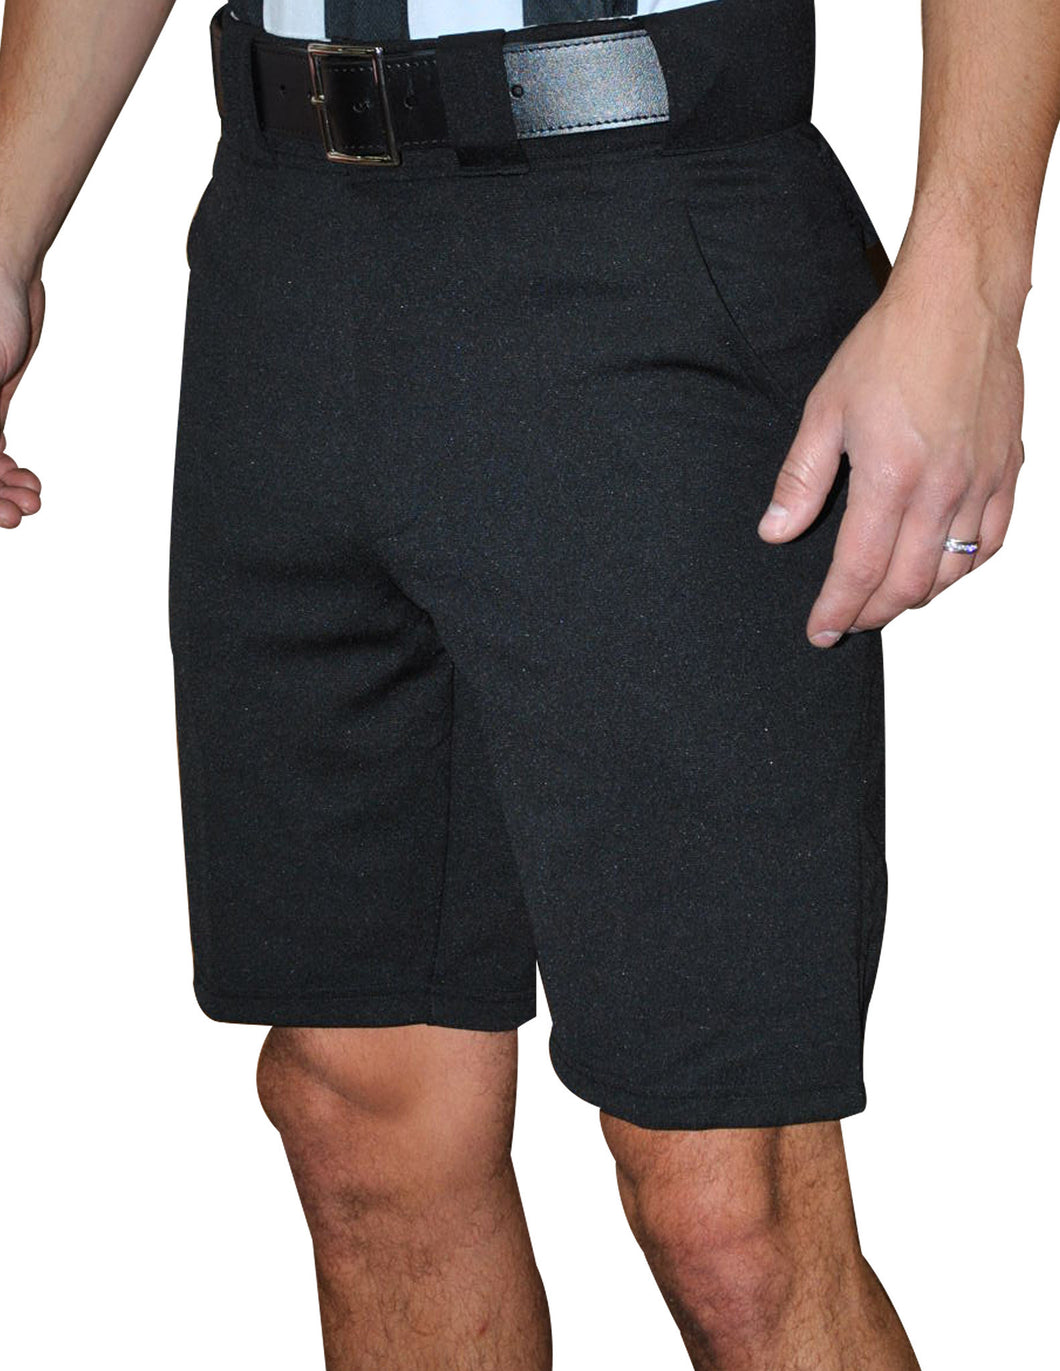 FBS170-Smitty Football Shorts w/ 9